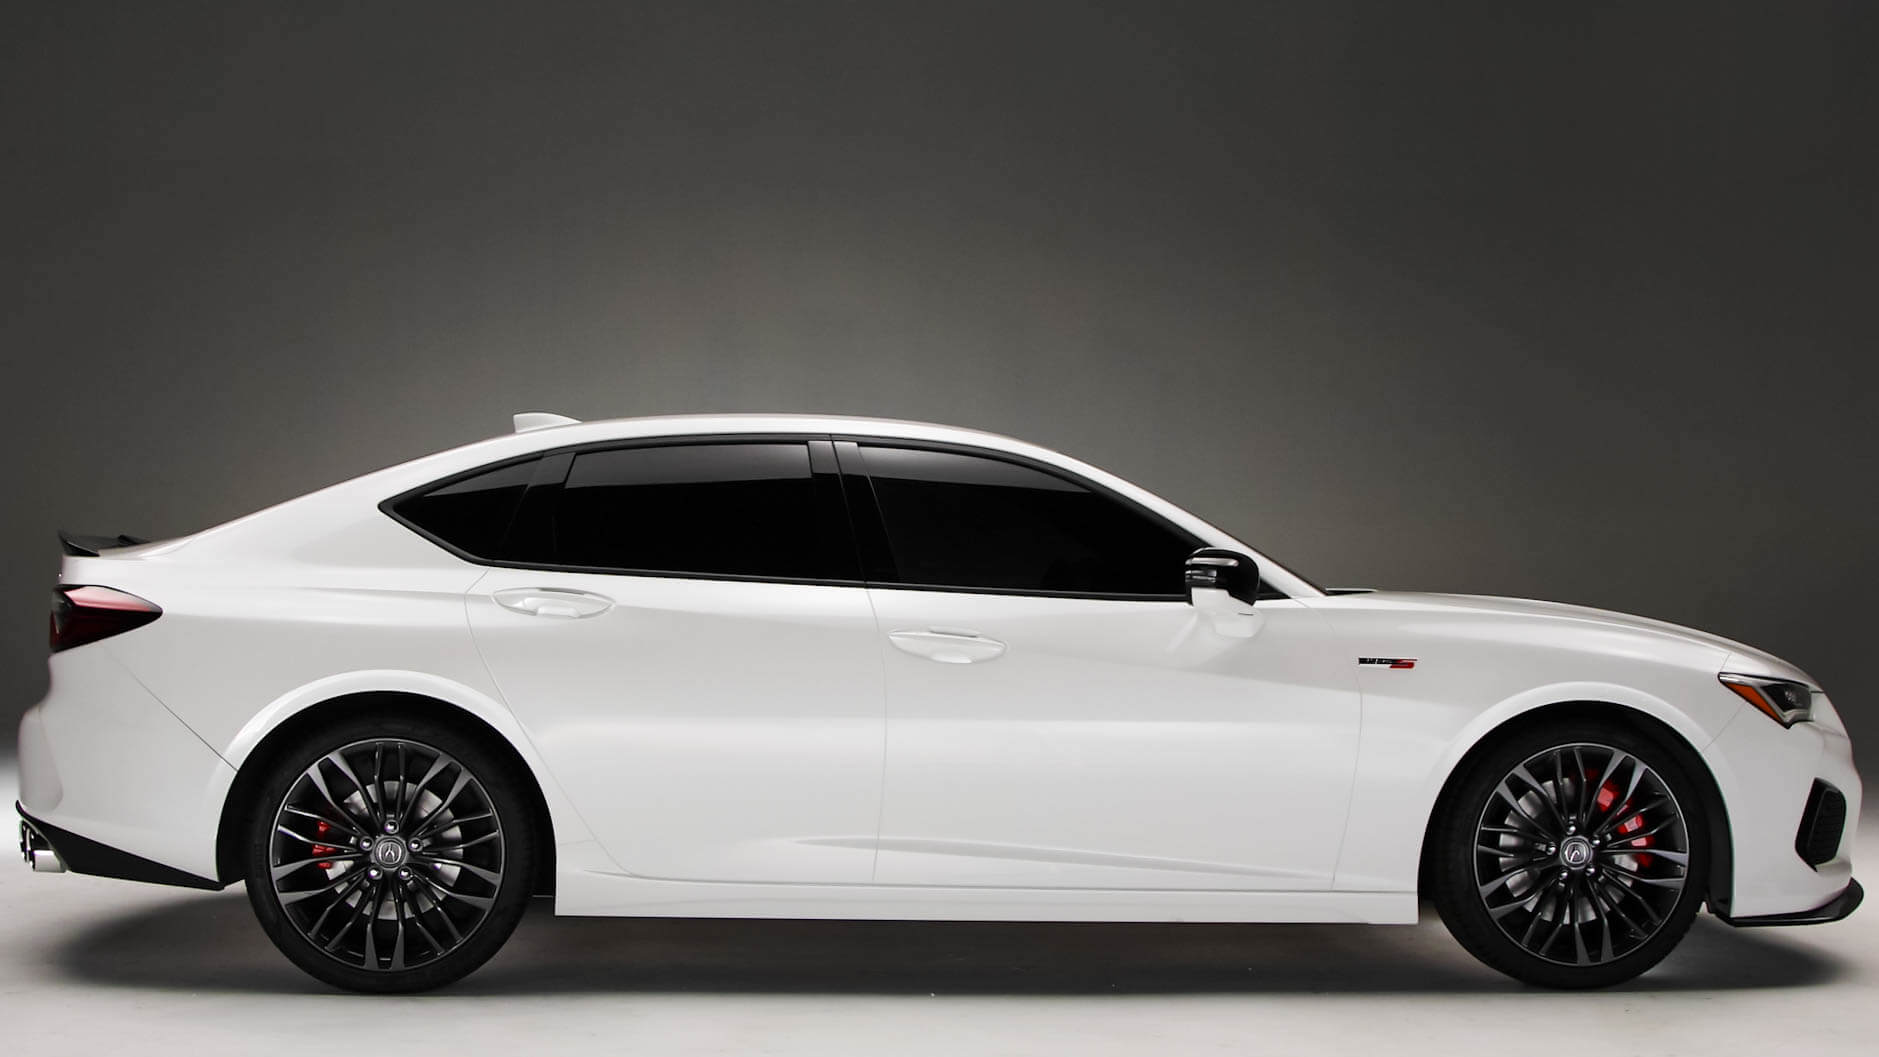 2021 Acura Tlx Type S And Audi S4 Specs Compared